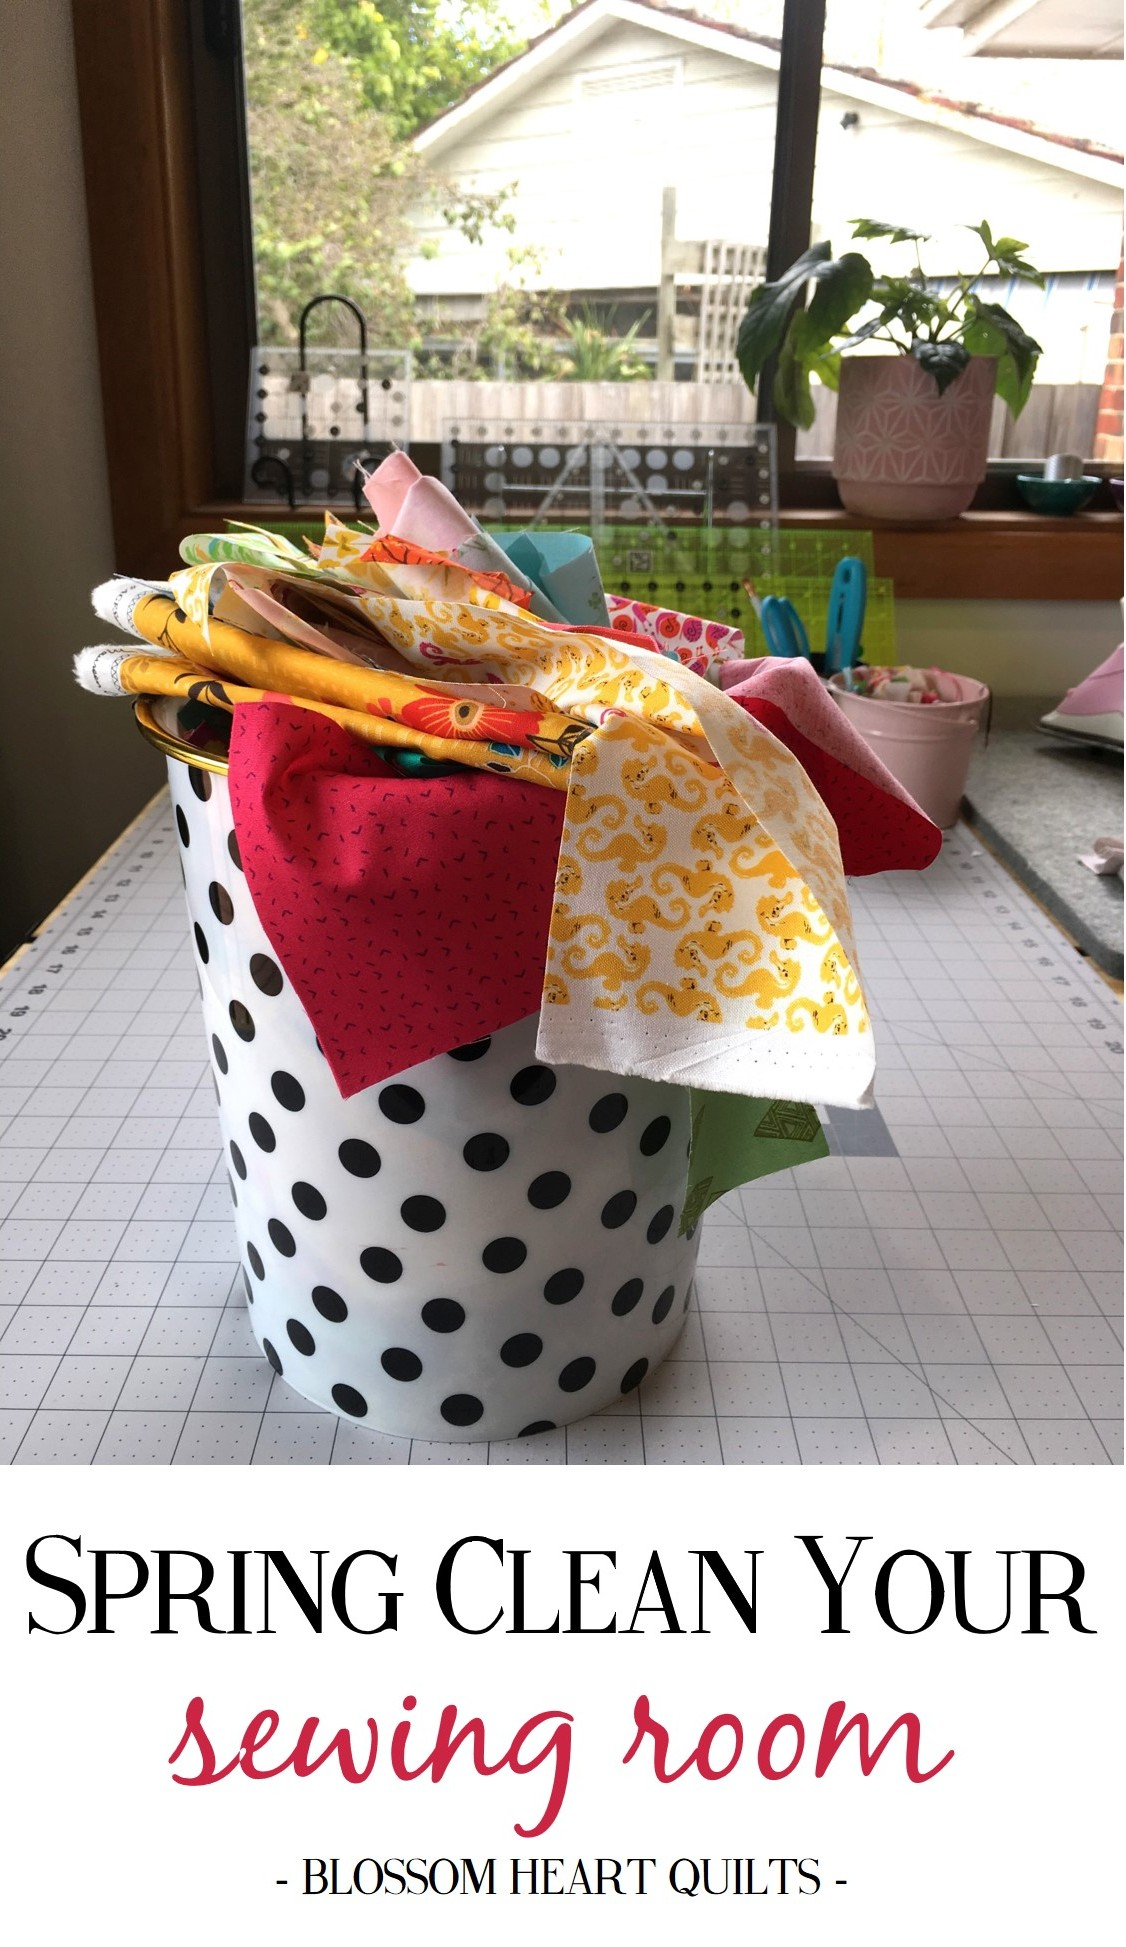 5 Ways to Spring Clean Your Sewing Room